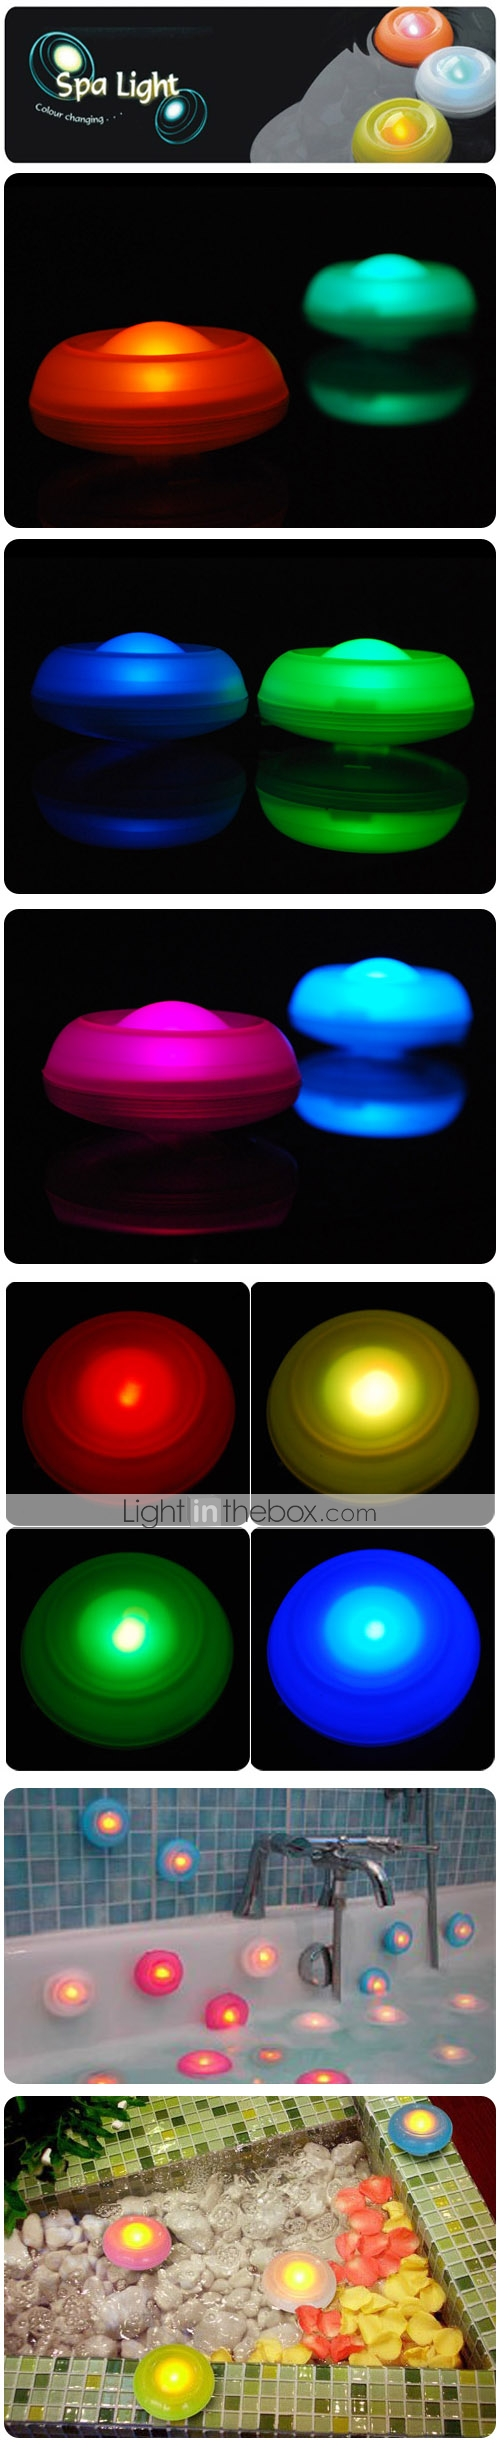 Colorful Floating Bathtub LED Candle Light (packed with 2 pcs)